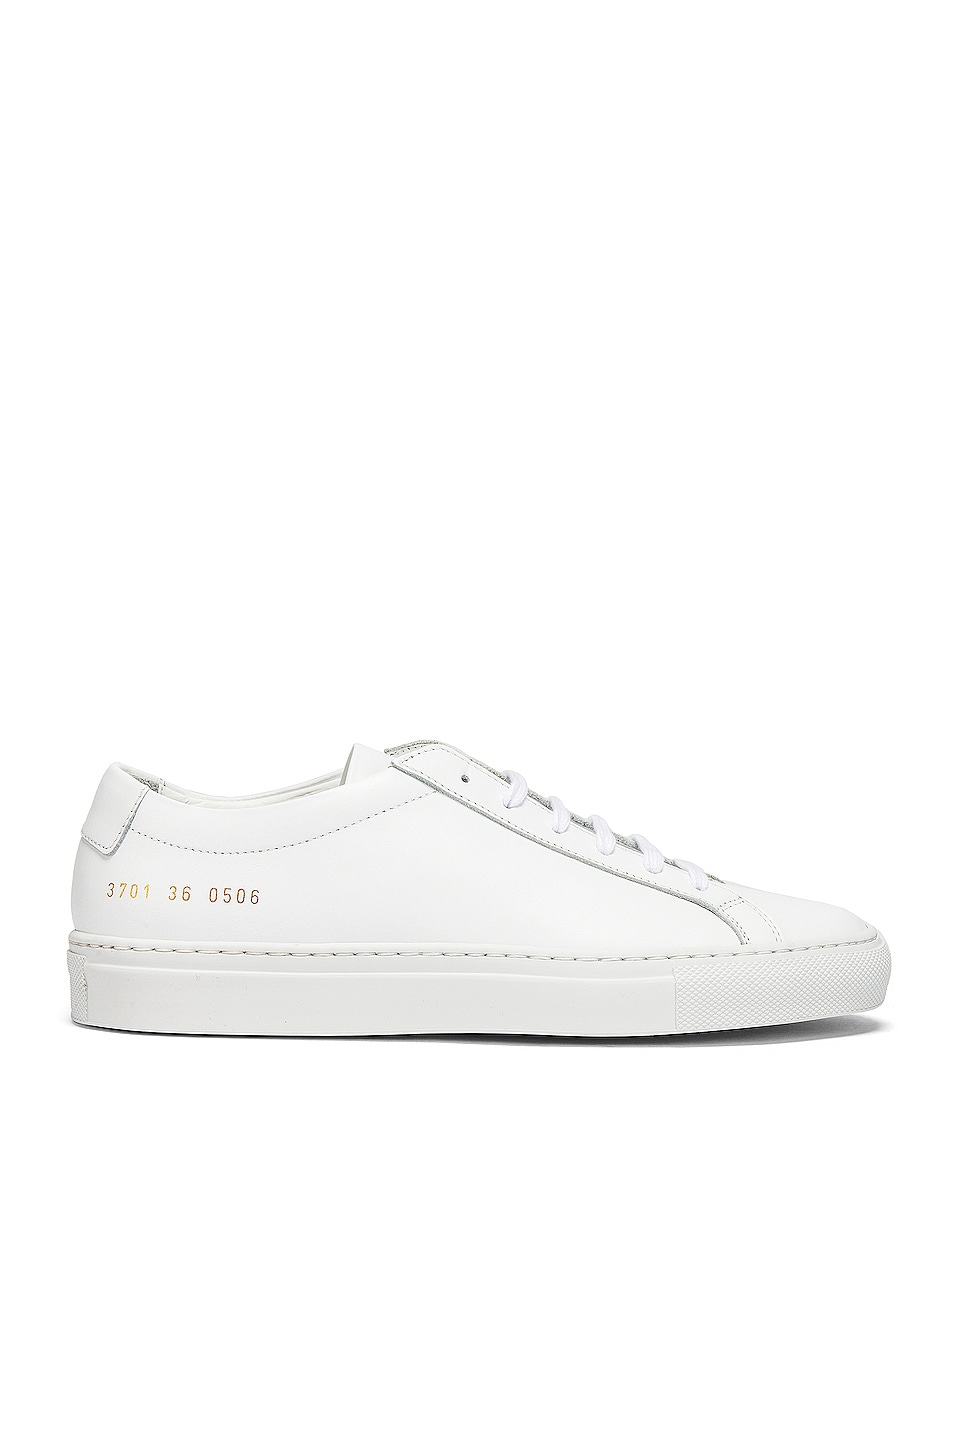 Common Projects КРОССОВКИ ORIGINAL ACHILLES LOW